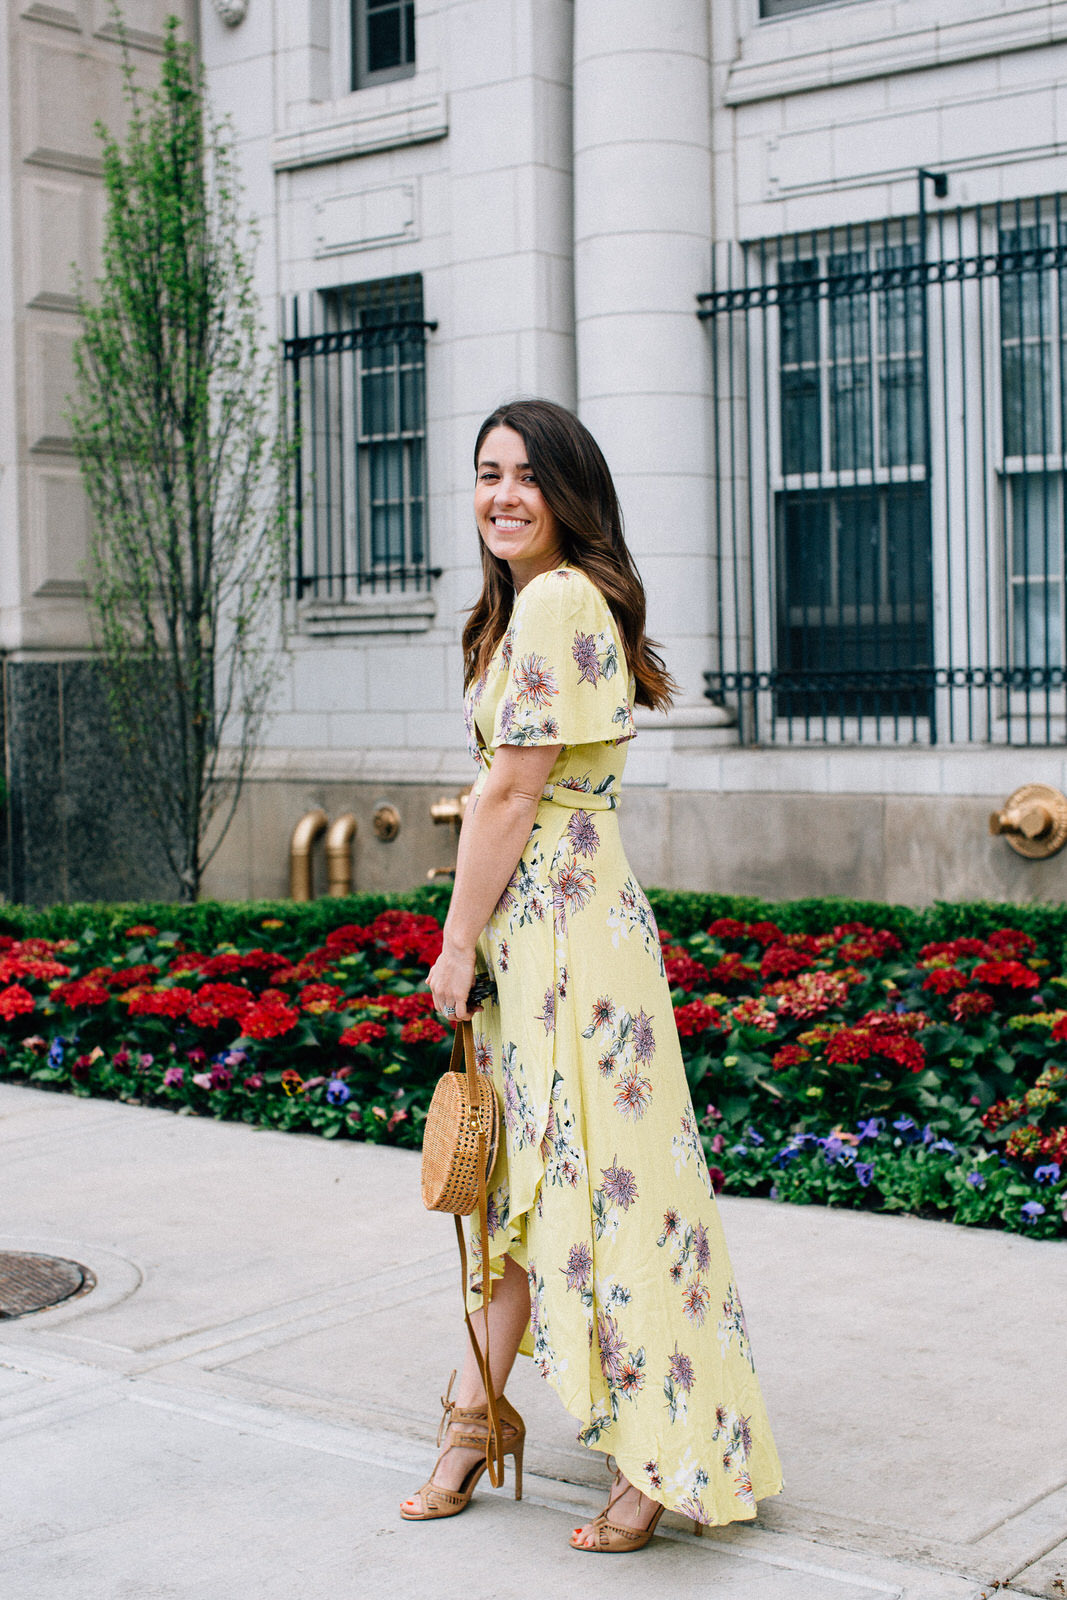 Liz Adams of Sequins & Stripes shares wedding guest dress ideas to wear to your next wedding.